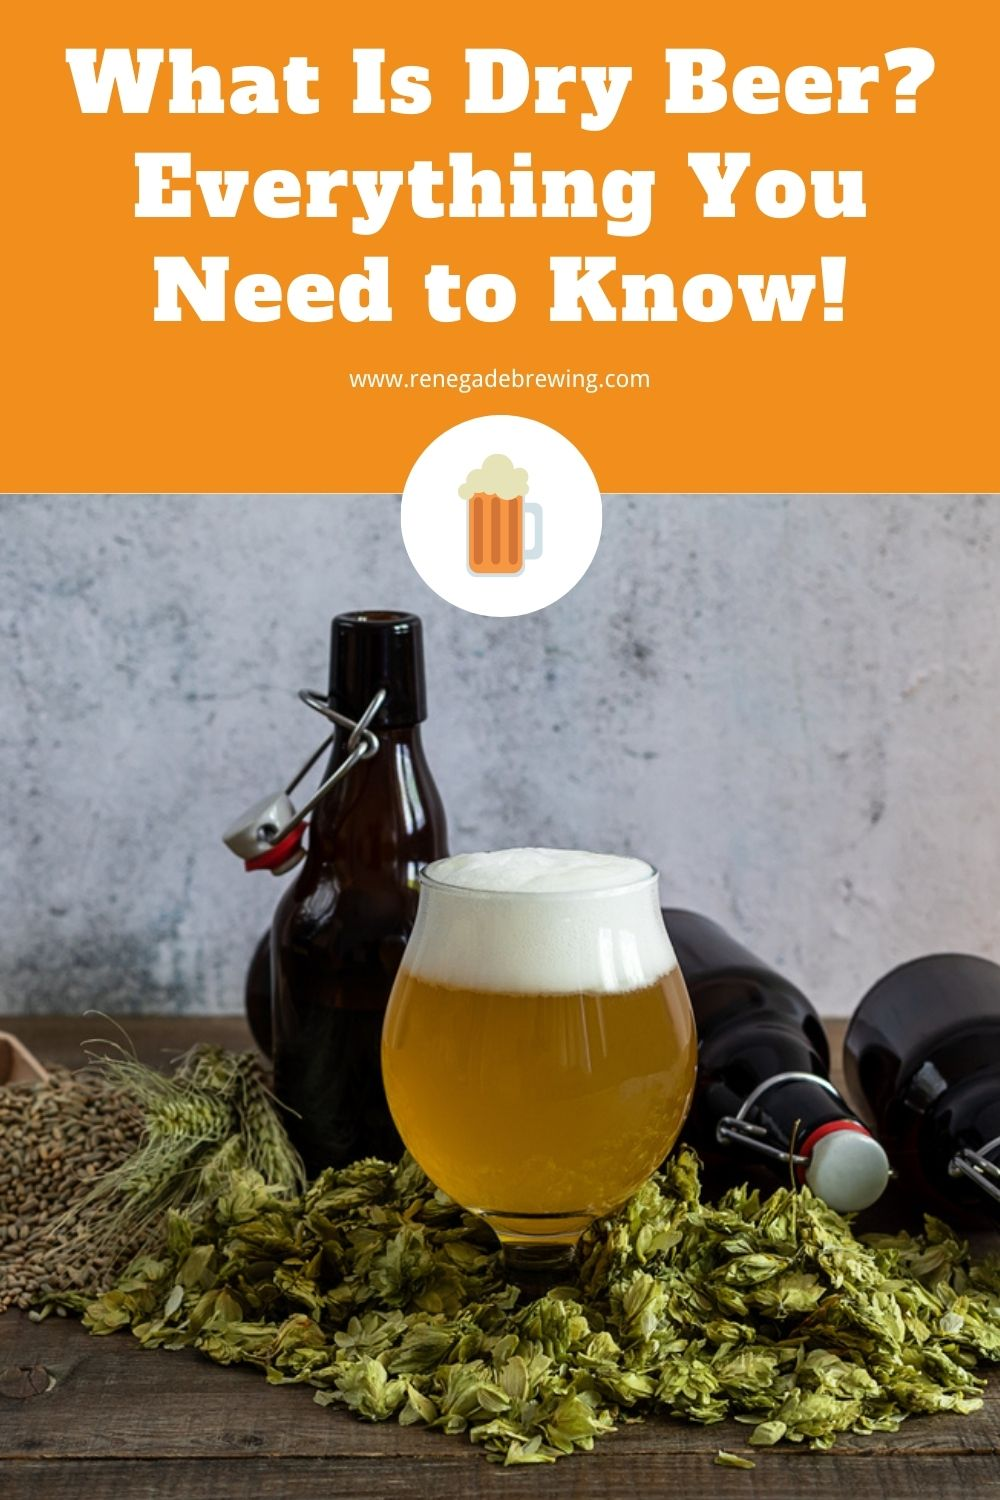 What Is Dry Beer Everything You Need to Know! 2